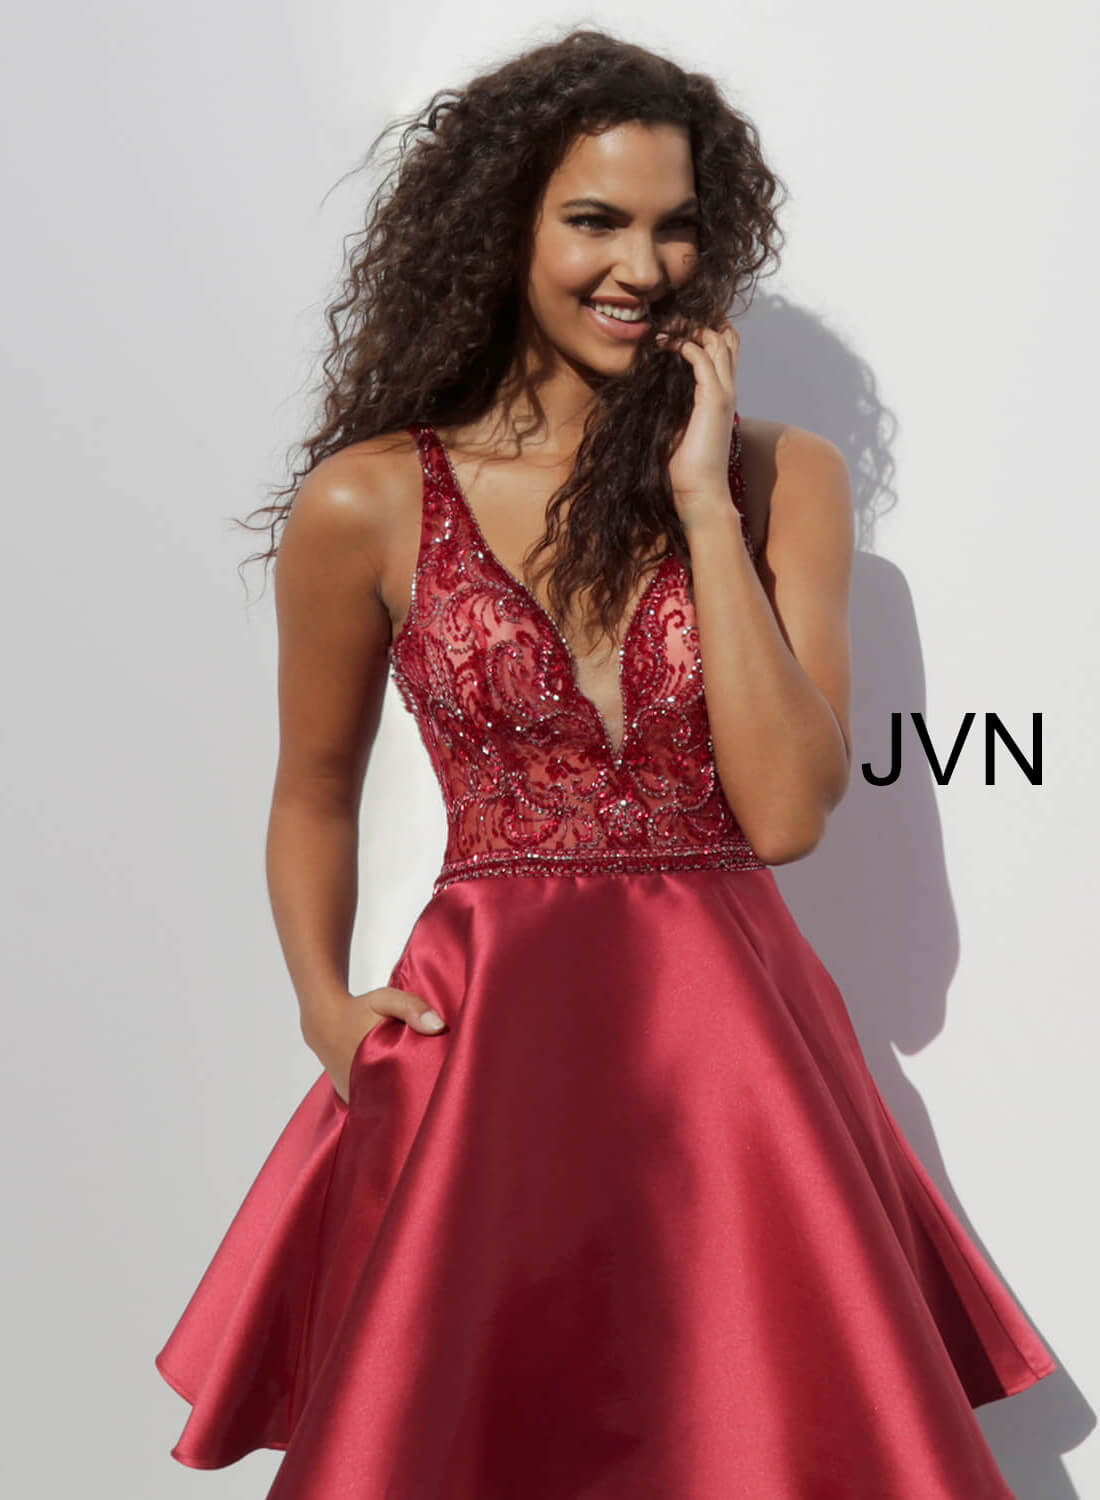 Where To Buy Homecoming Dresses In York Pa